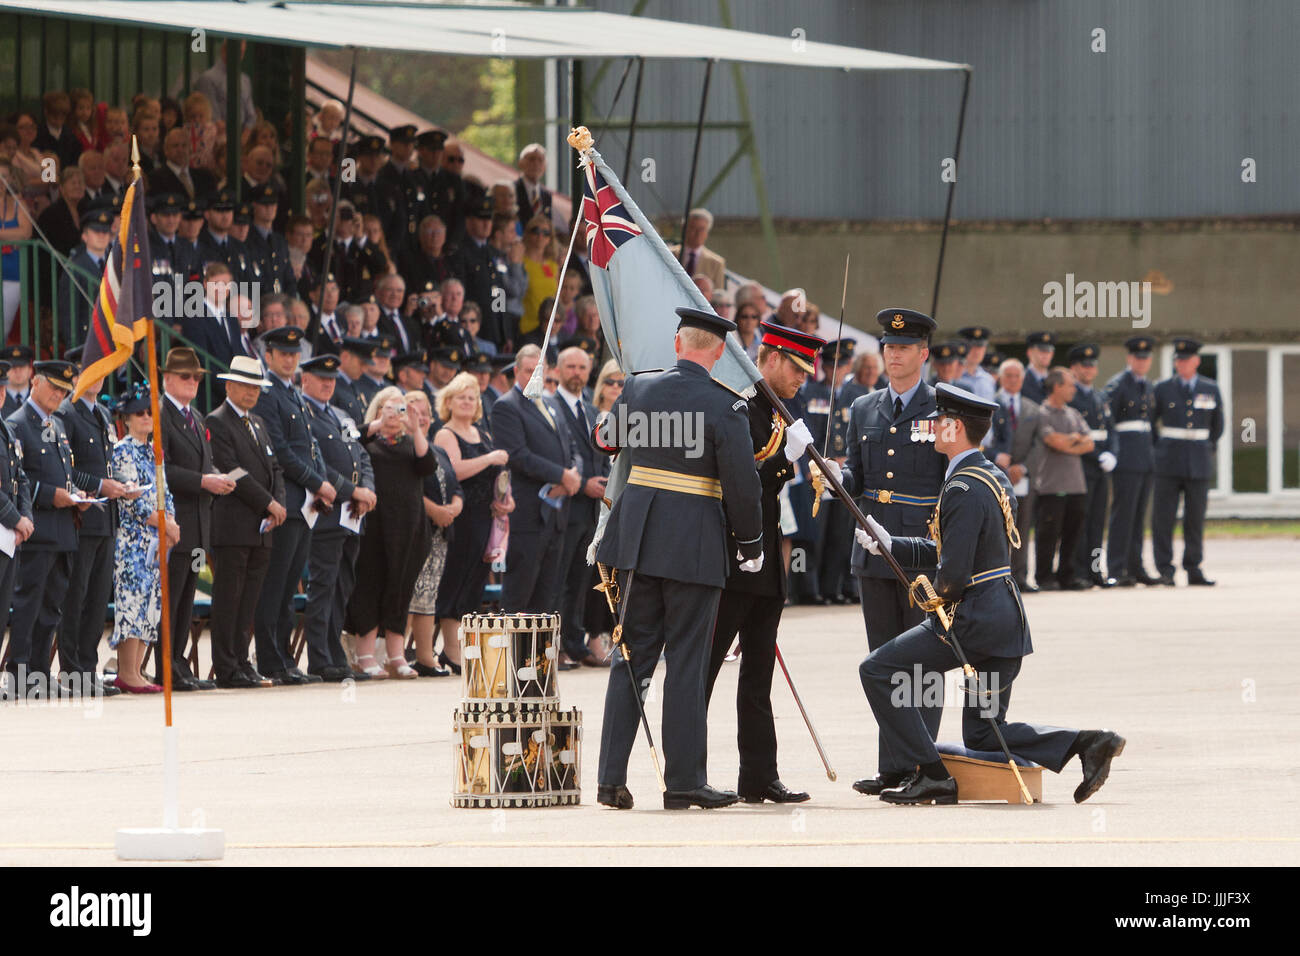 Suffolk, UK. 20th Jul, 2017. His Royal Highness Prince Harry presents the Queens' new Colour at Raf Honington. - Stock Image